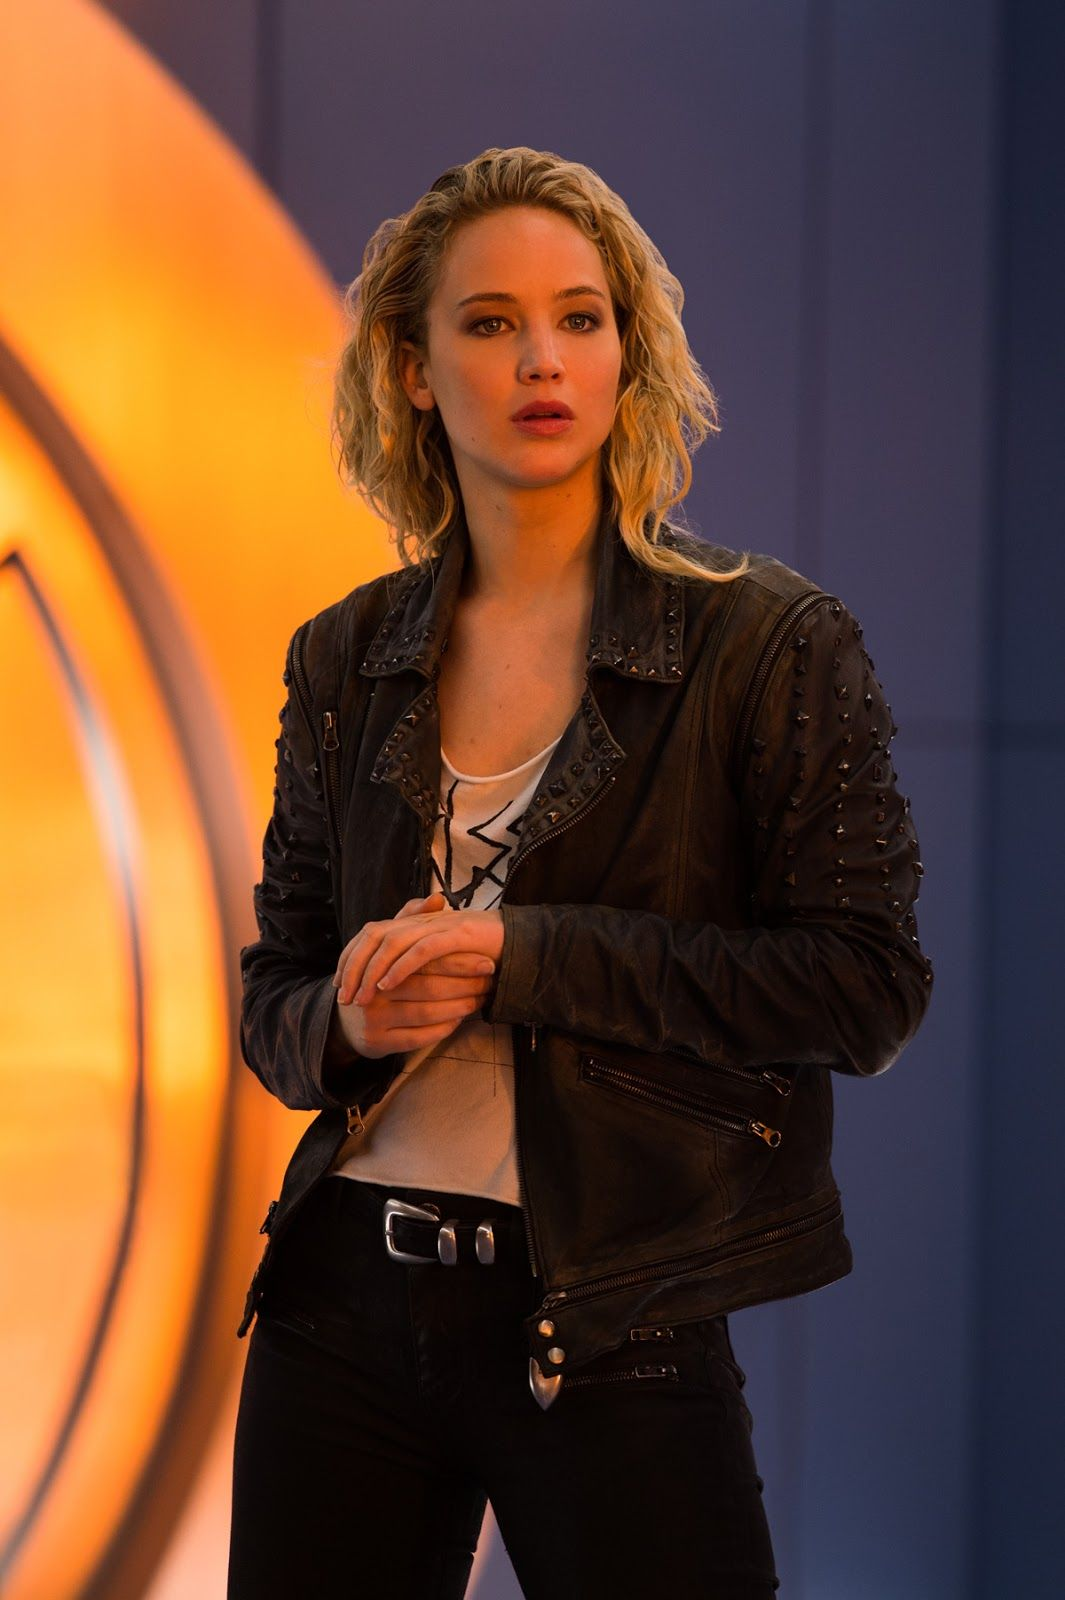 X Men Apocalypse 2016 Jennifer Lawrence Movies List Top 10 Jennifer Lawrence Movies Jennifer Lawrence Biography Jennifer Lawrence X Men Mystique Marvel